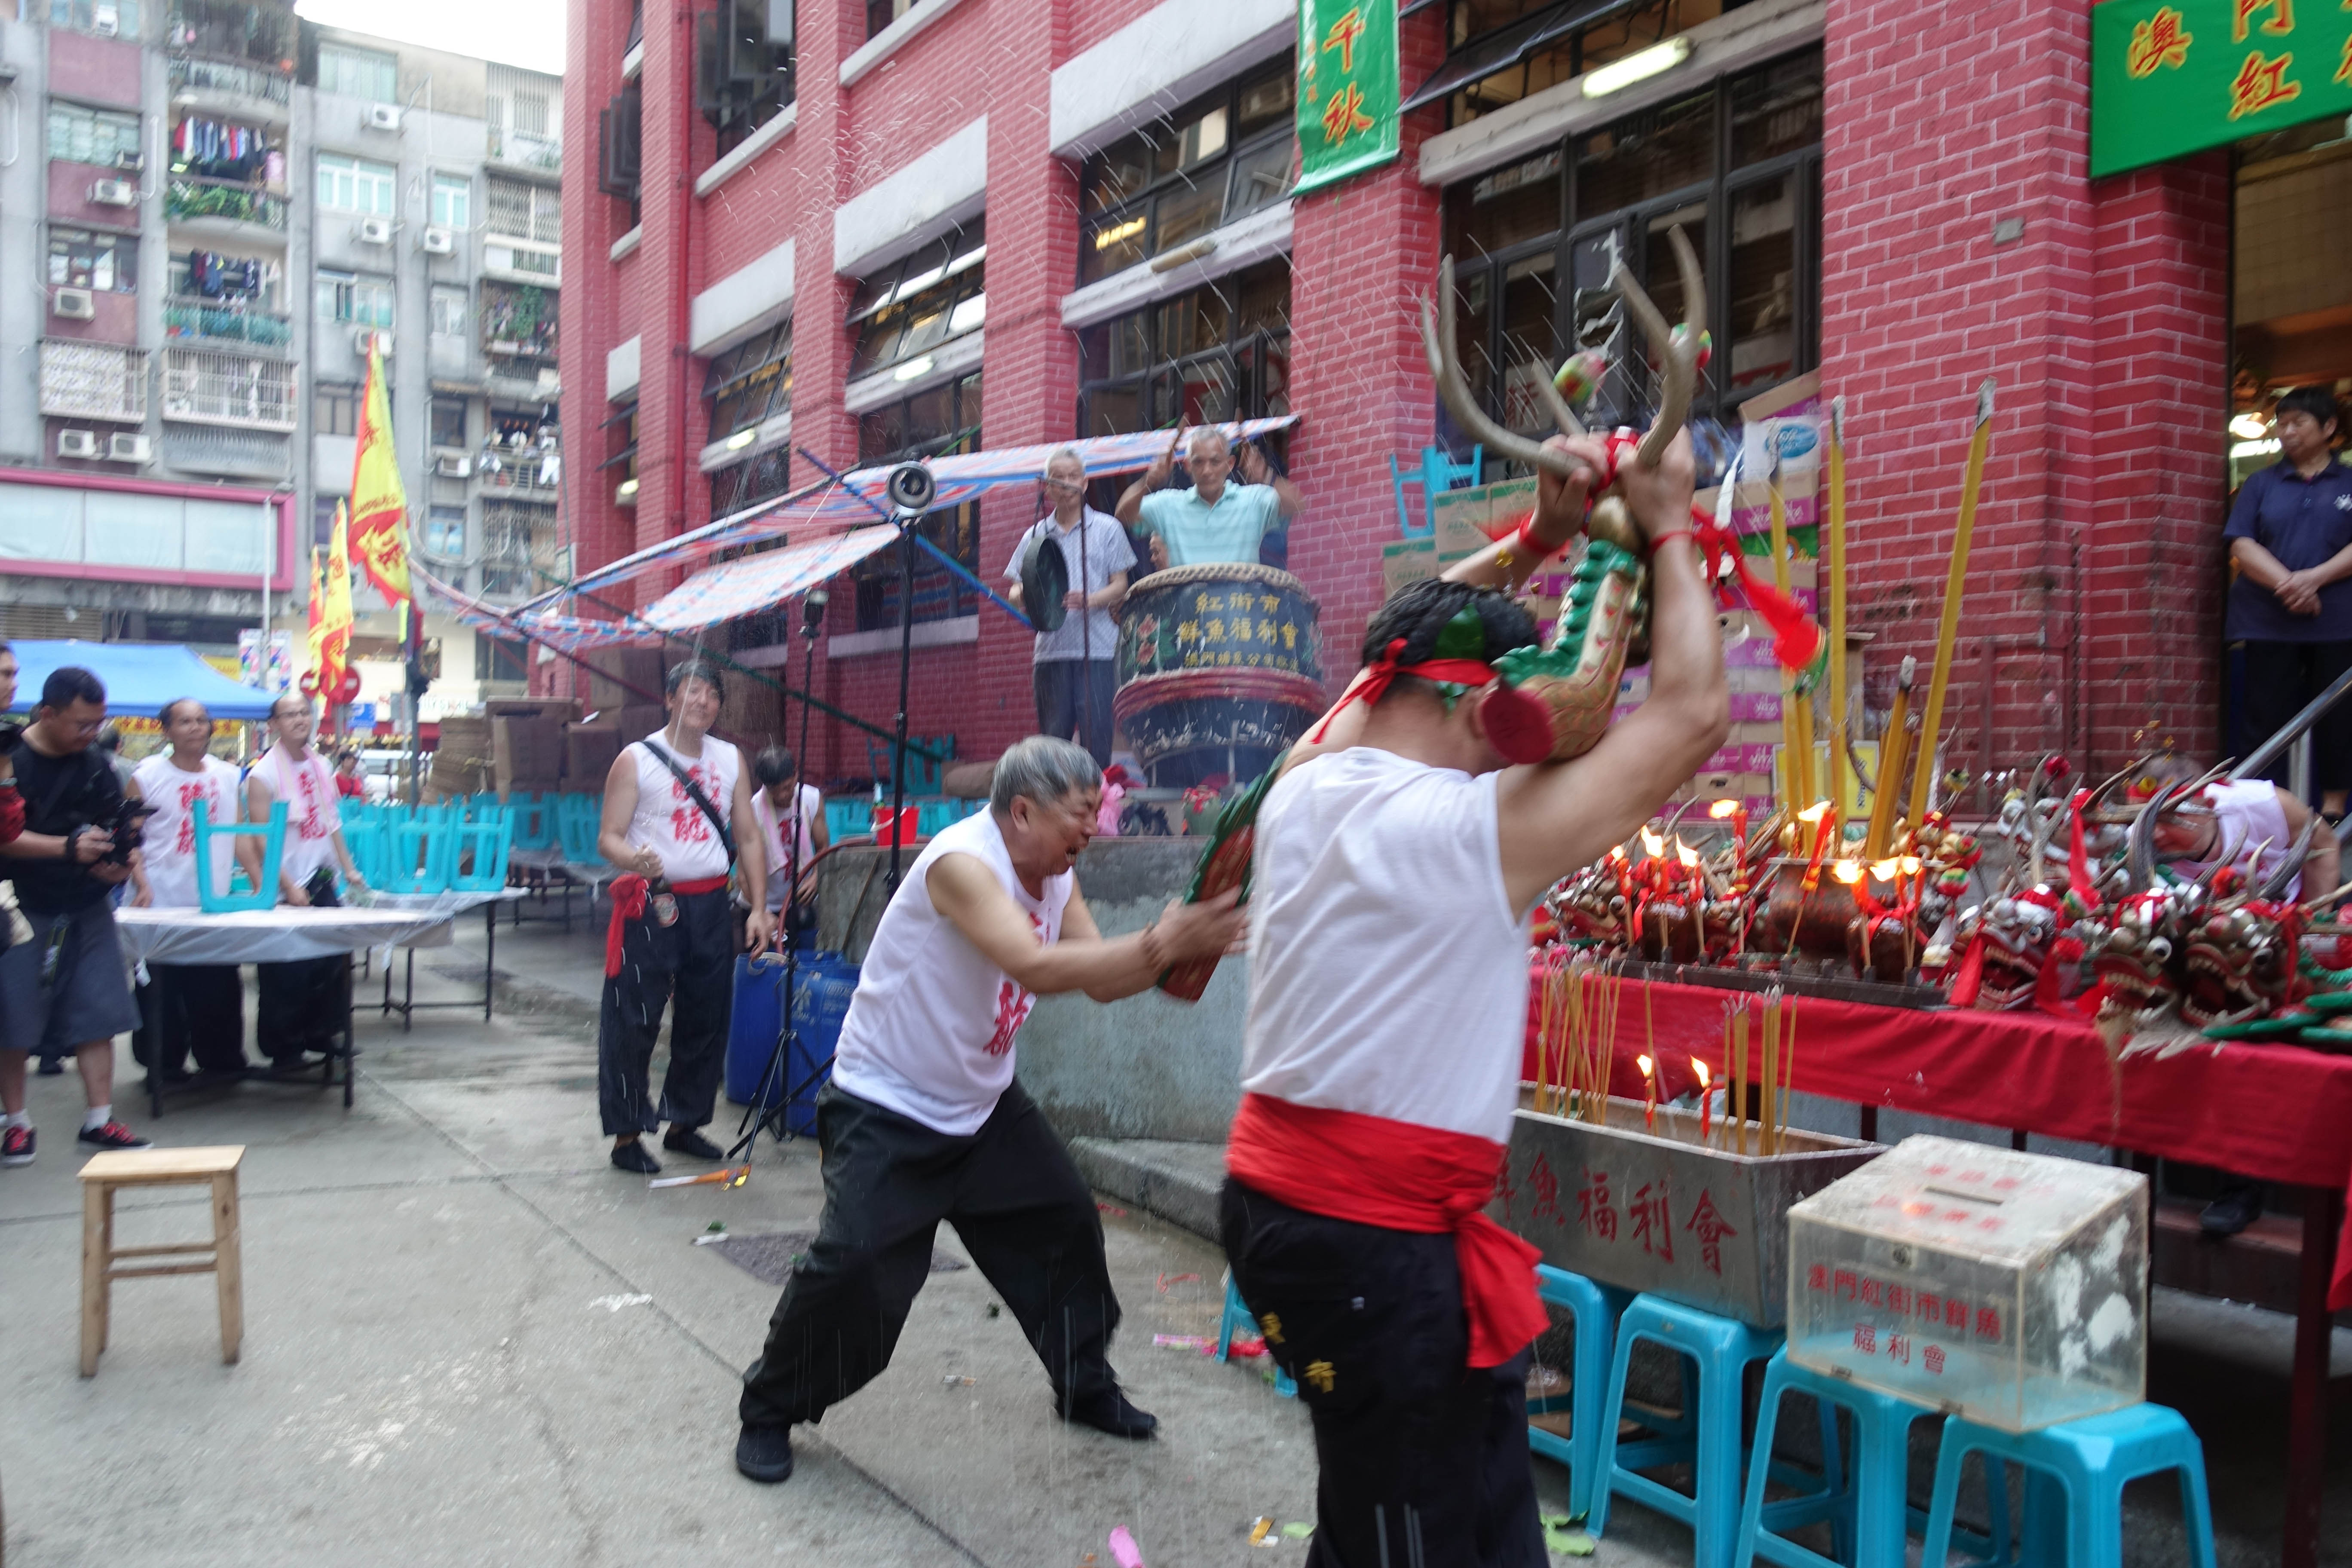 The Festival of Drunken Dragon in Macao is one of the events covered in the study